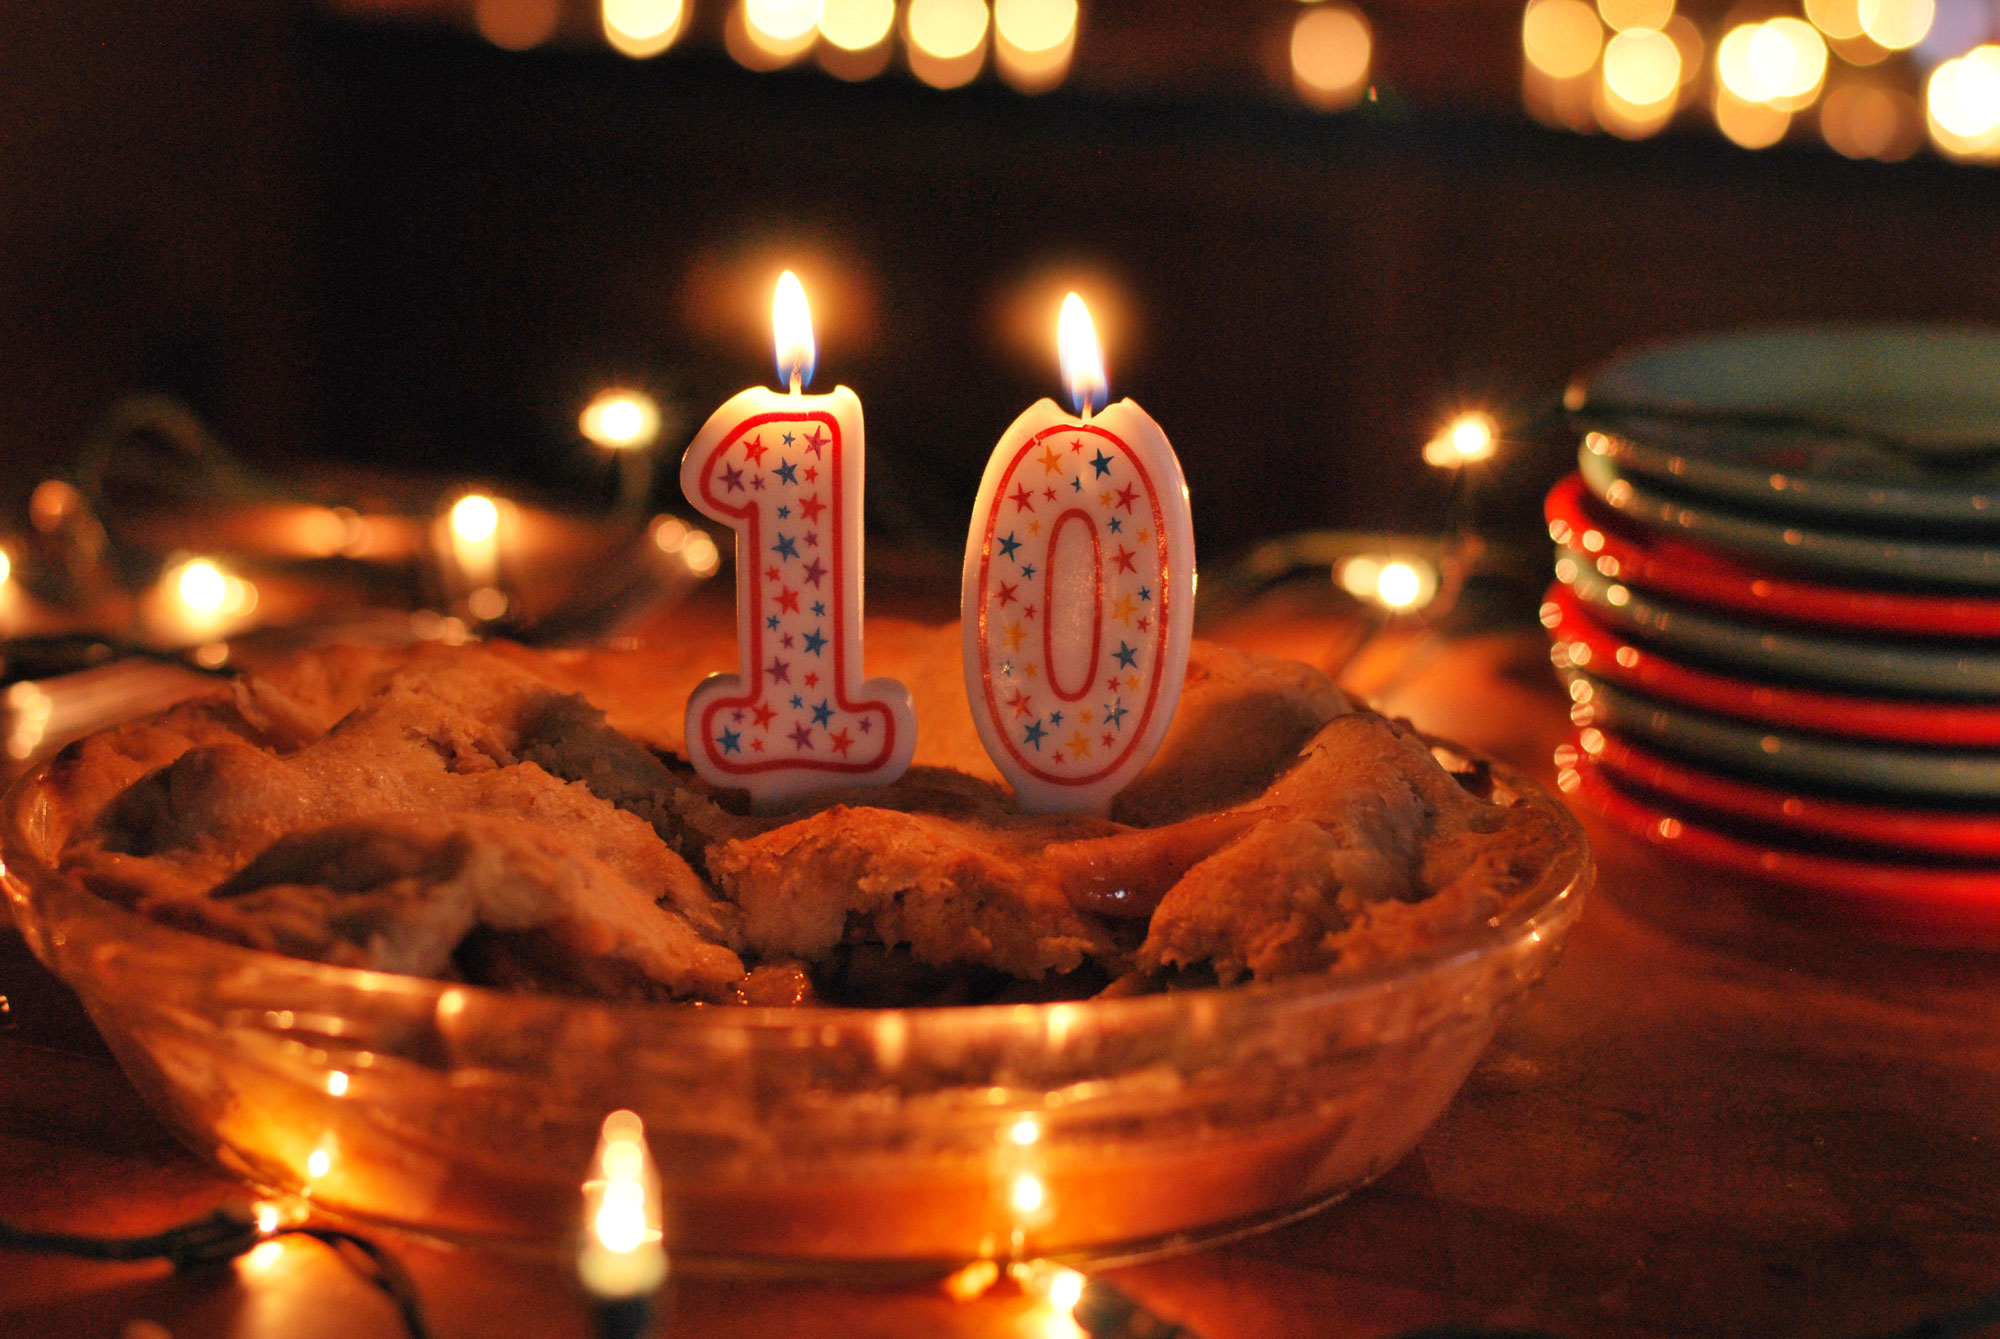 Adunate is celebrating 10 Years of being a creative business!